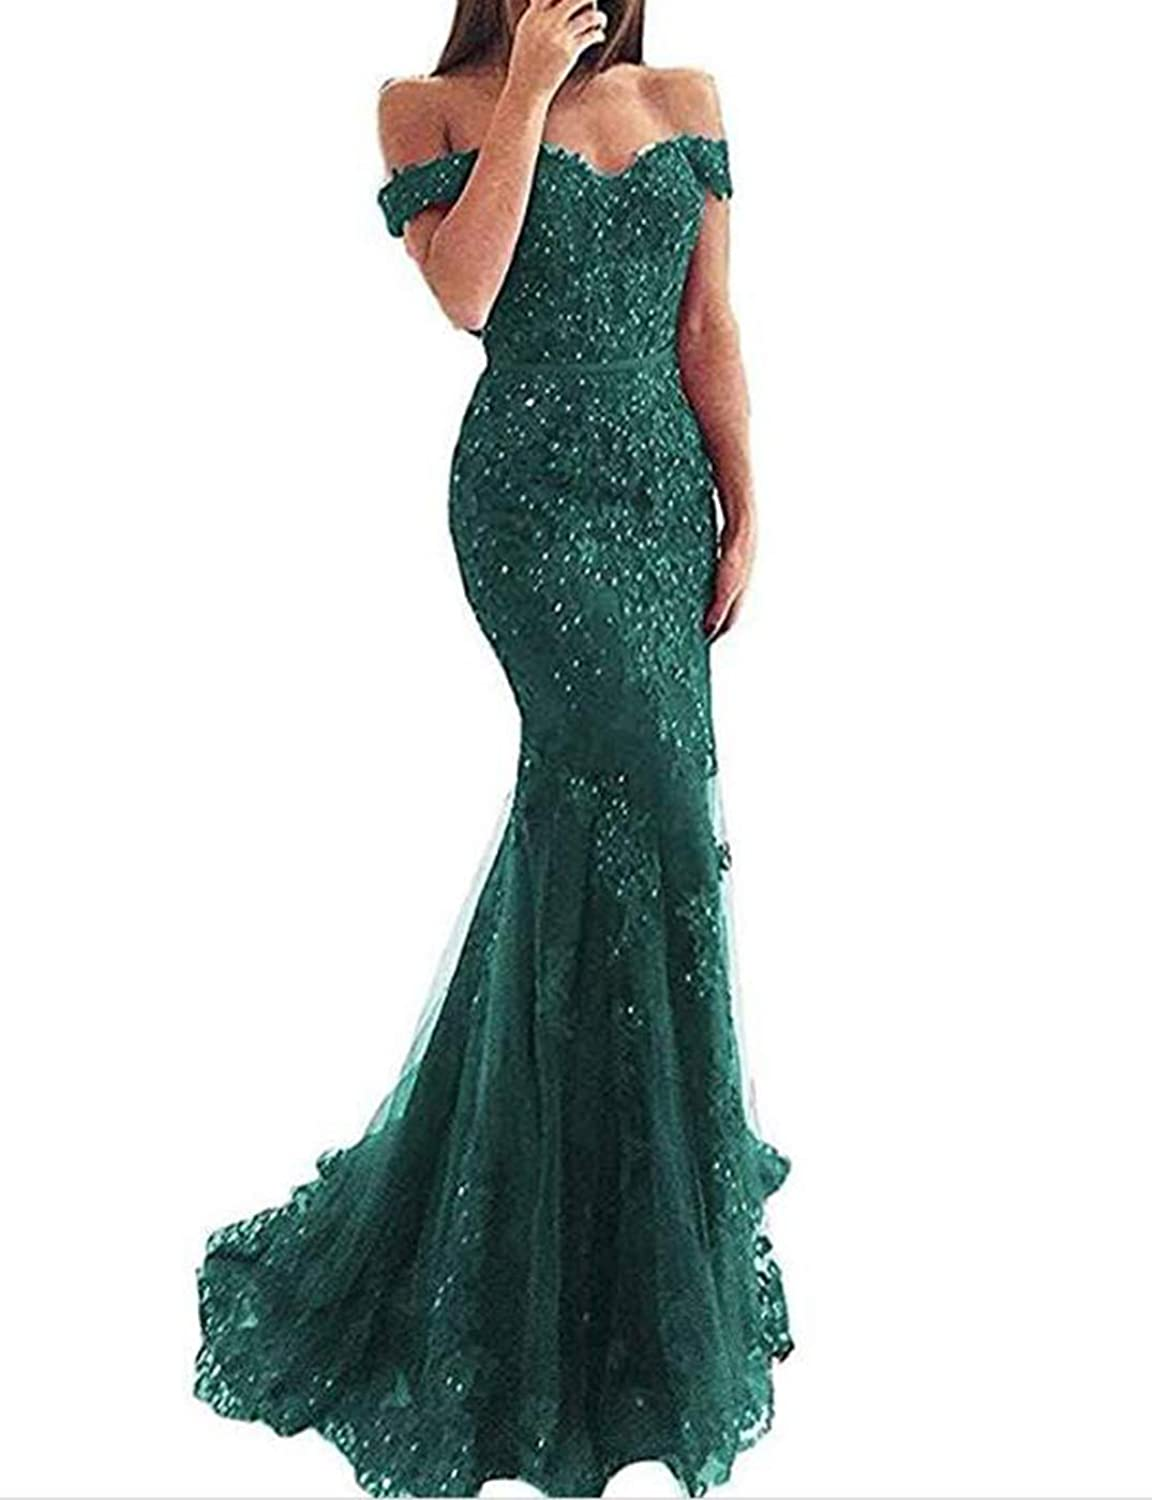 Alicebridal Women's Sexy V Neck Off Shoulder Mermaid Prom Dresses Lace Appliques Formal Evening Party Gowns